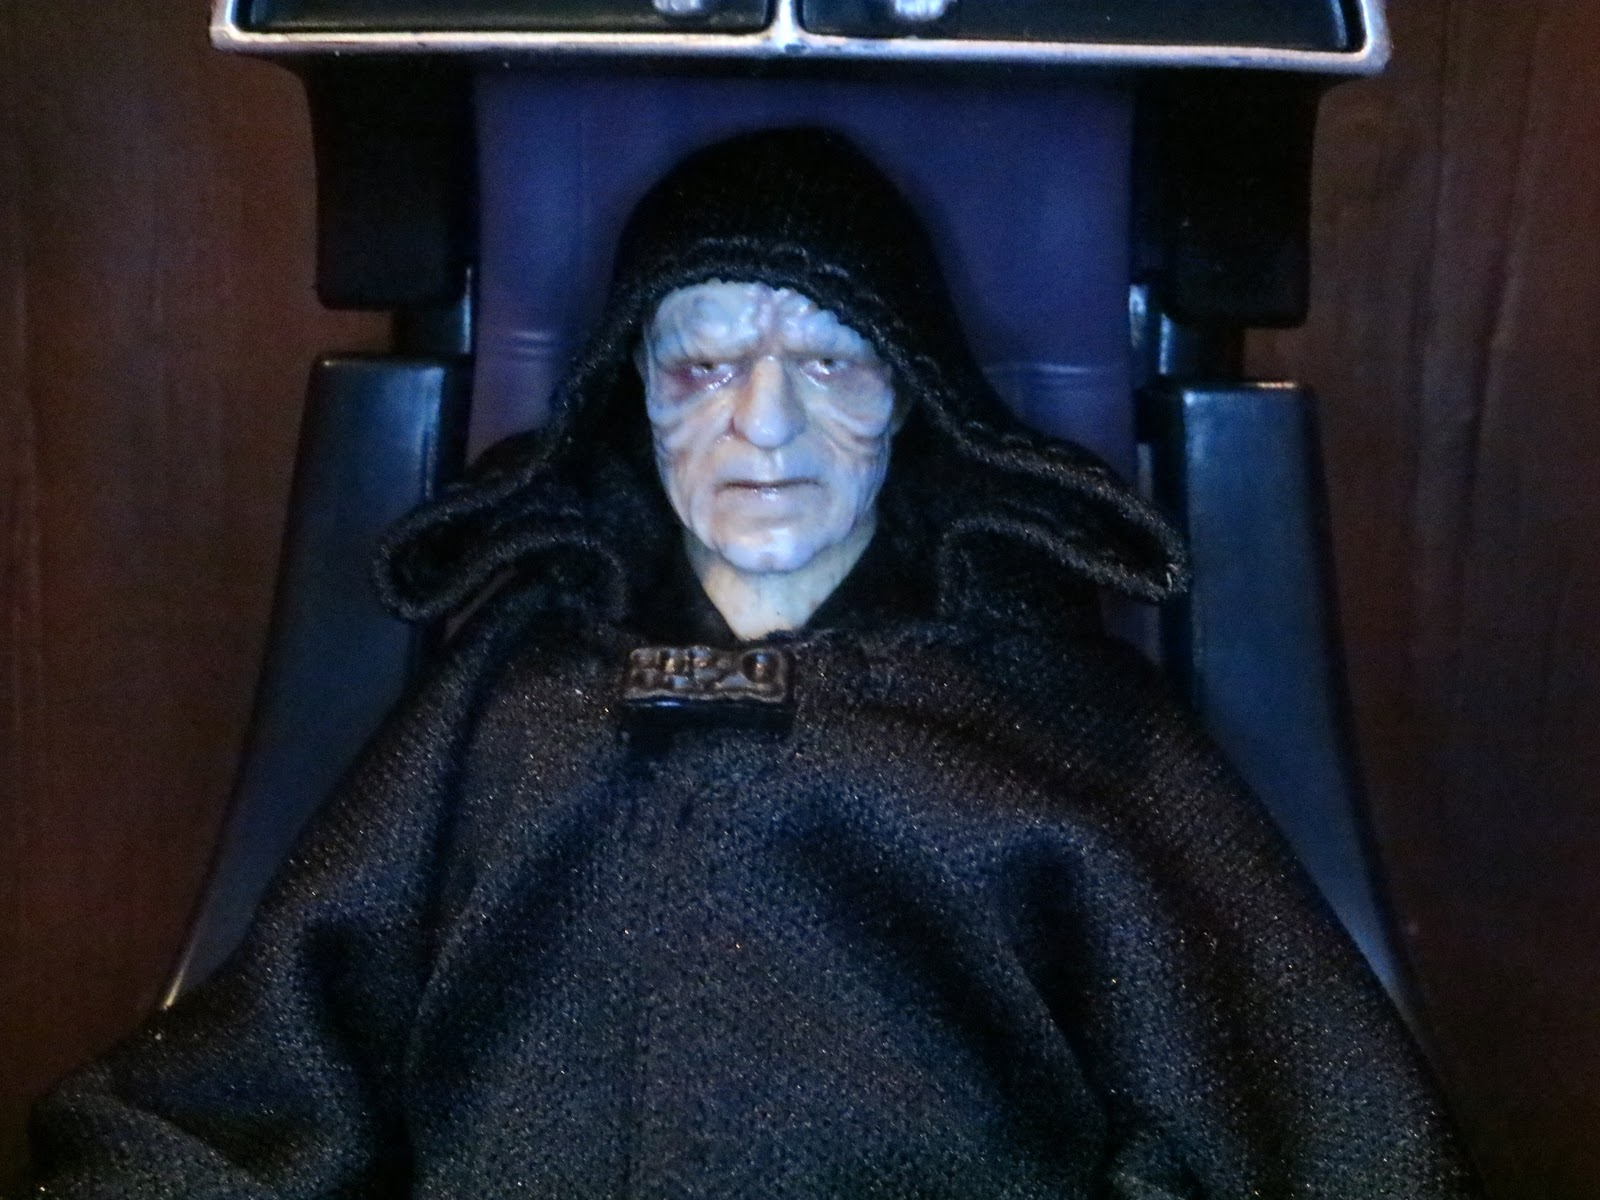 Action Figure Barbecue Road To Rise Of The Skywalker Emperor Palpatine And Throne From Star Wars The Black Series Phase Iii By Hasbro